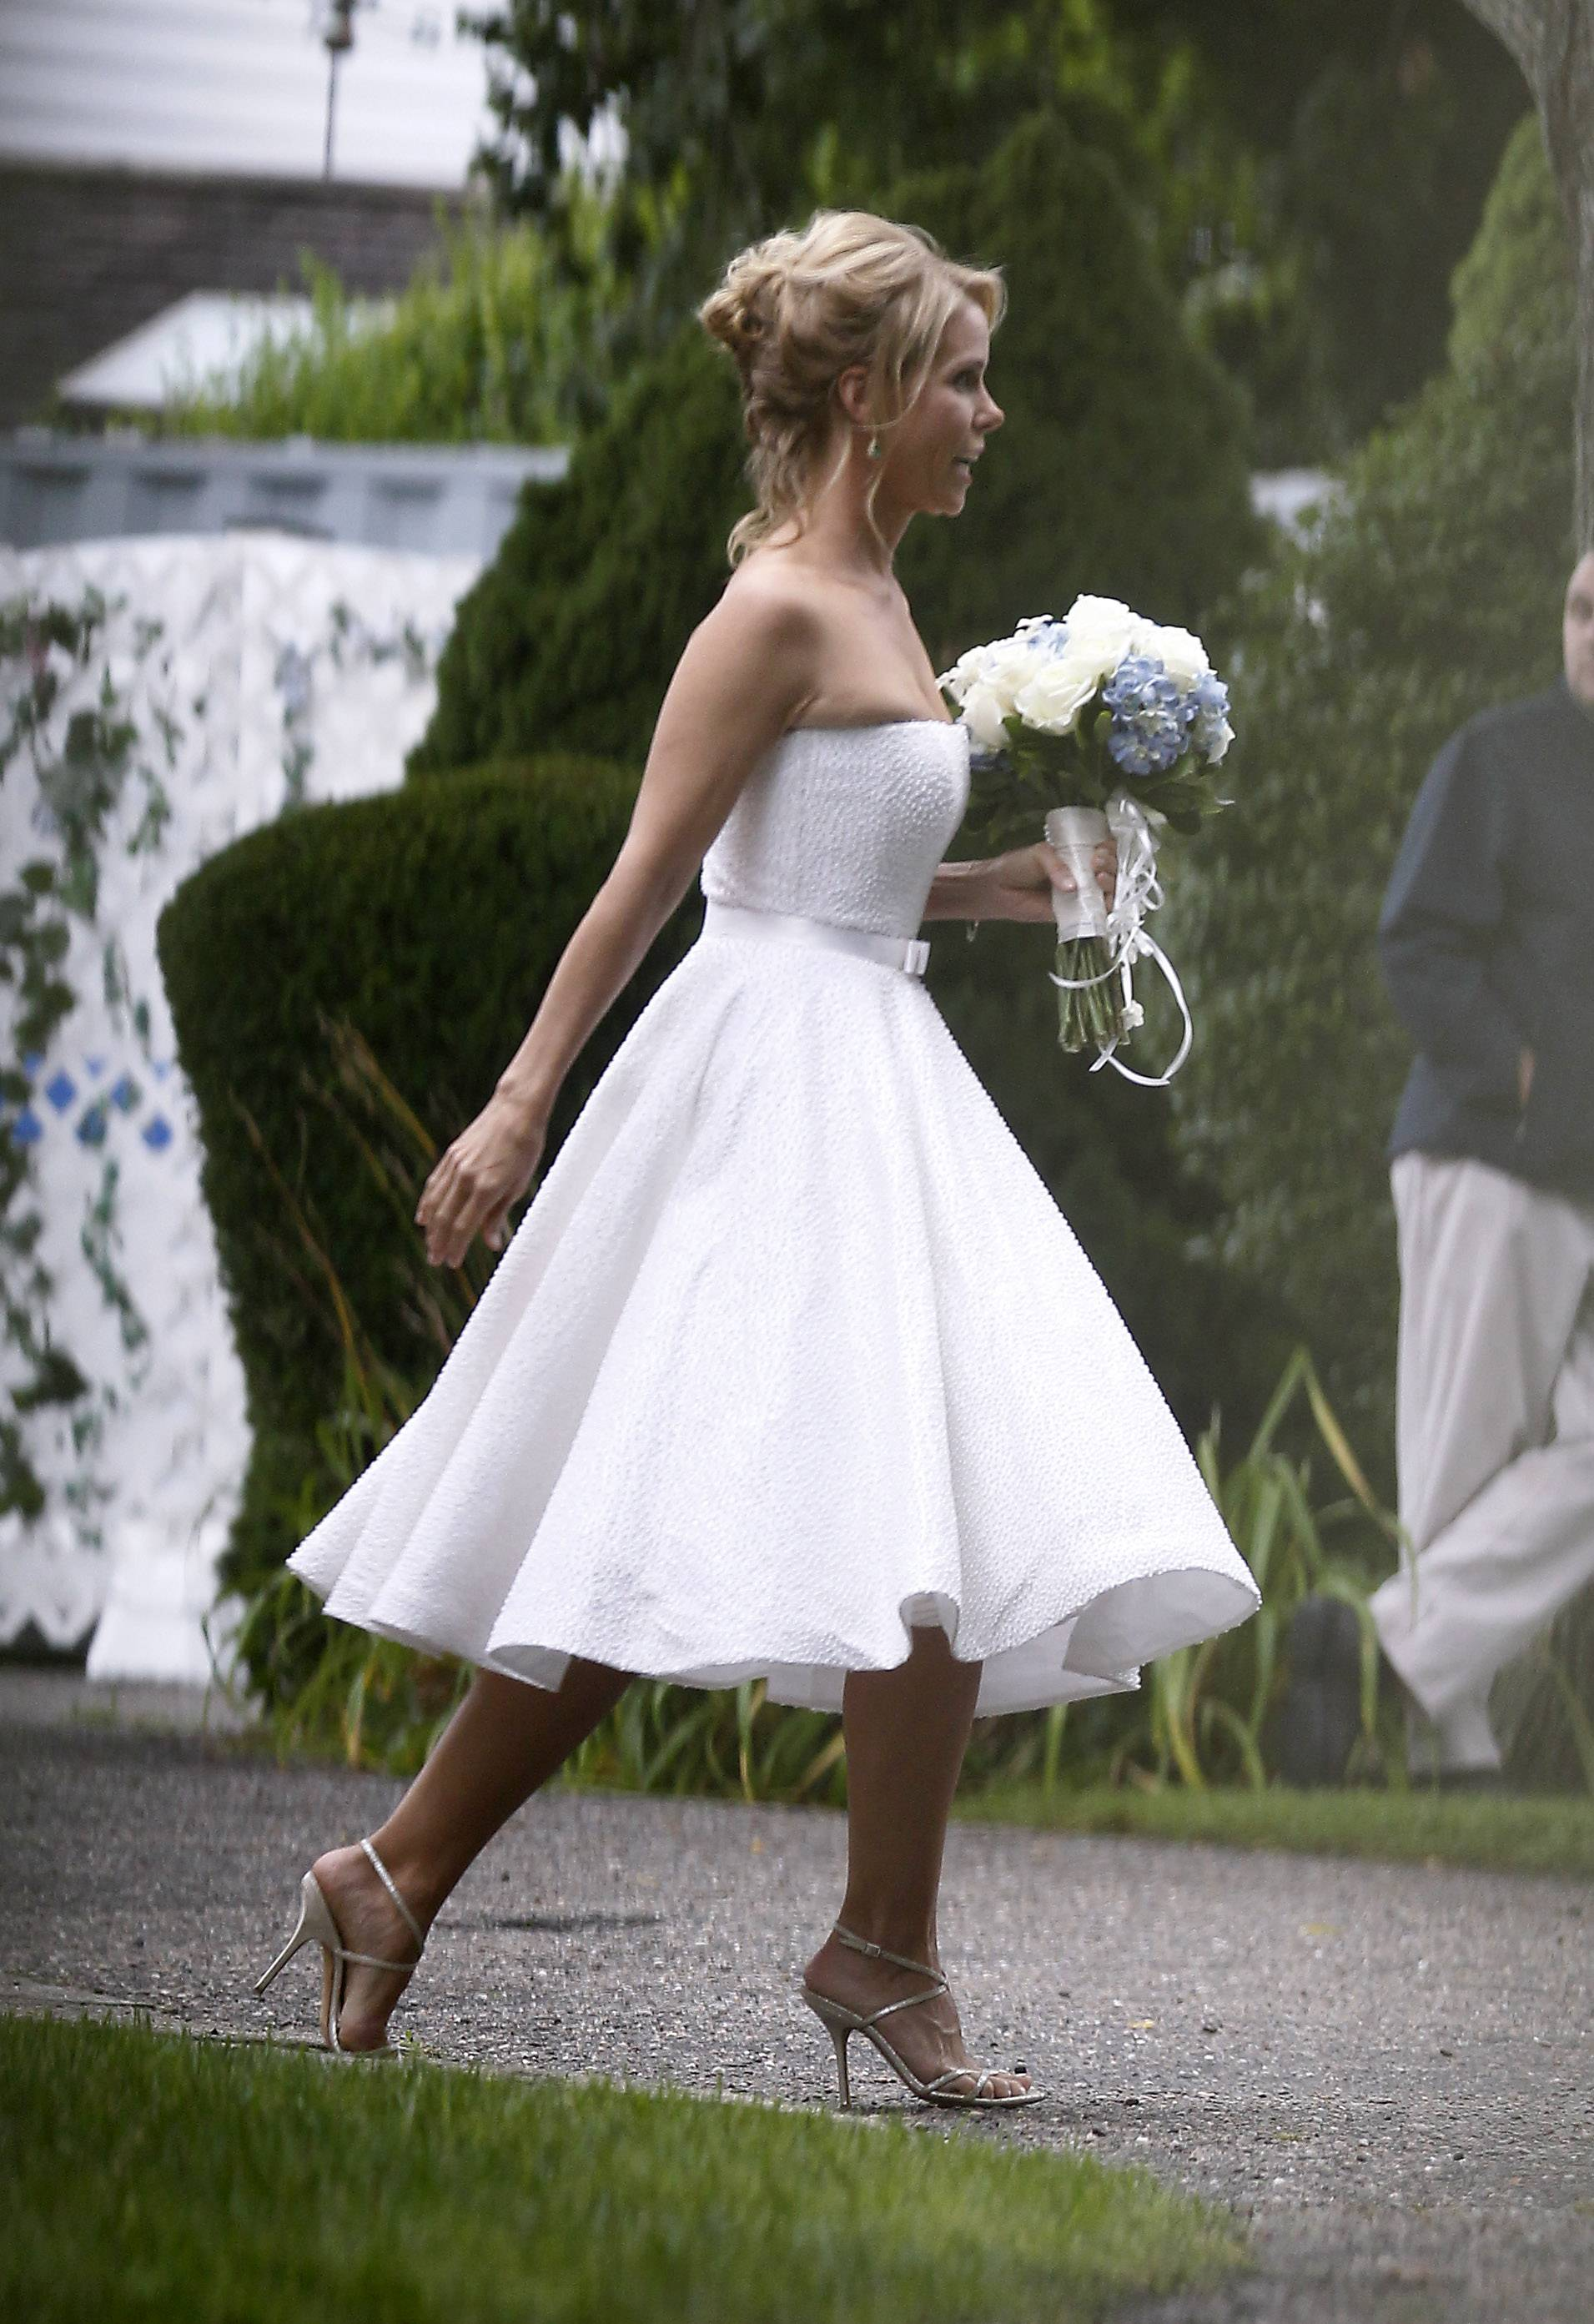 Actress Cheryl Hines walks across a lawn to the tent where her wedding to Robert F. Kennedy Jr., will take place Saturday in Hyannis Port, Mass.